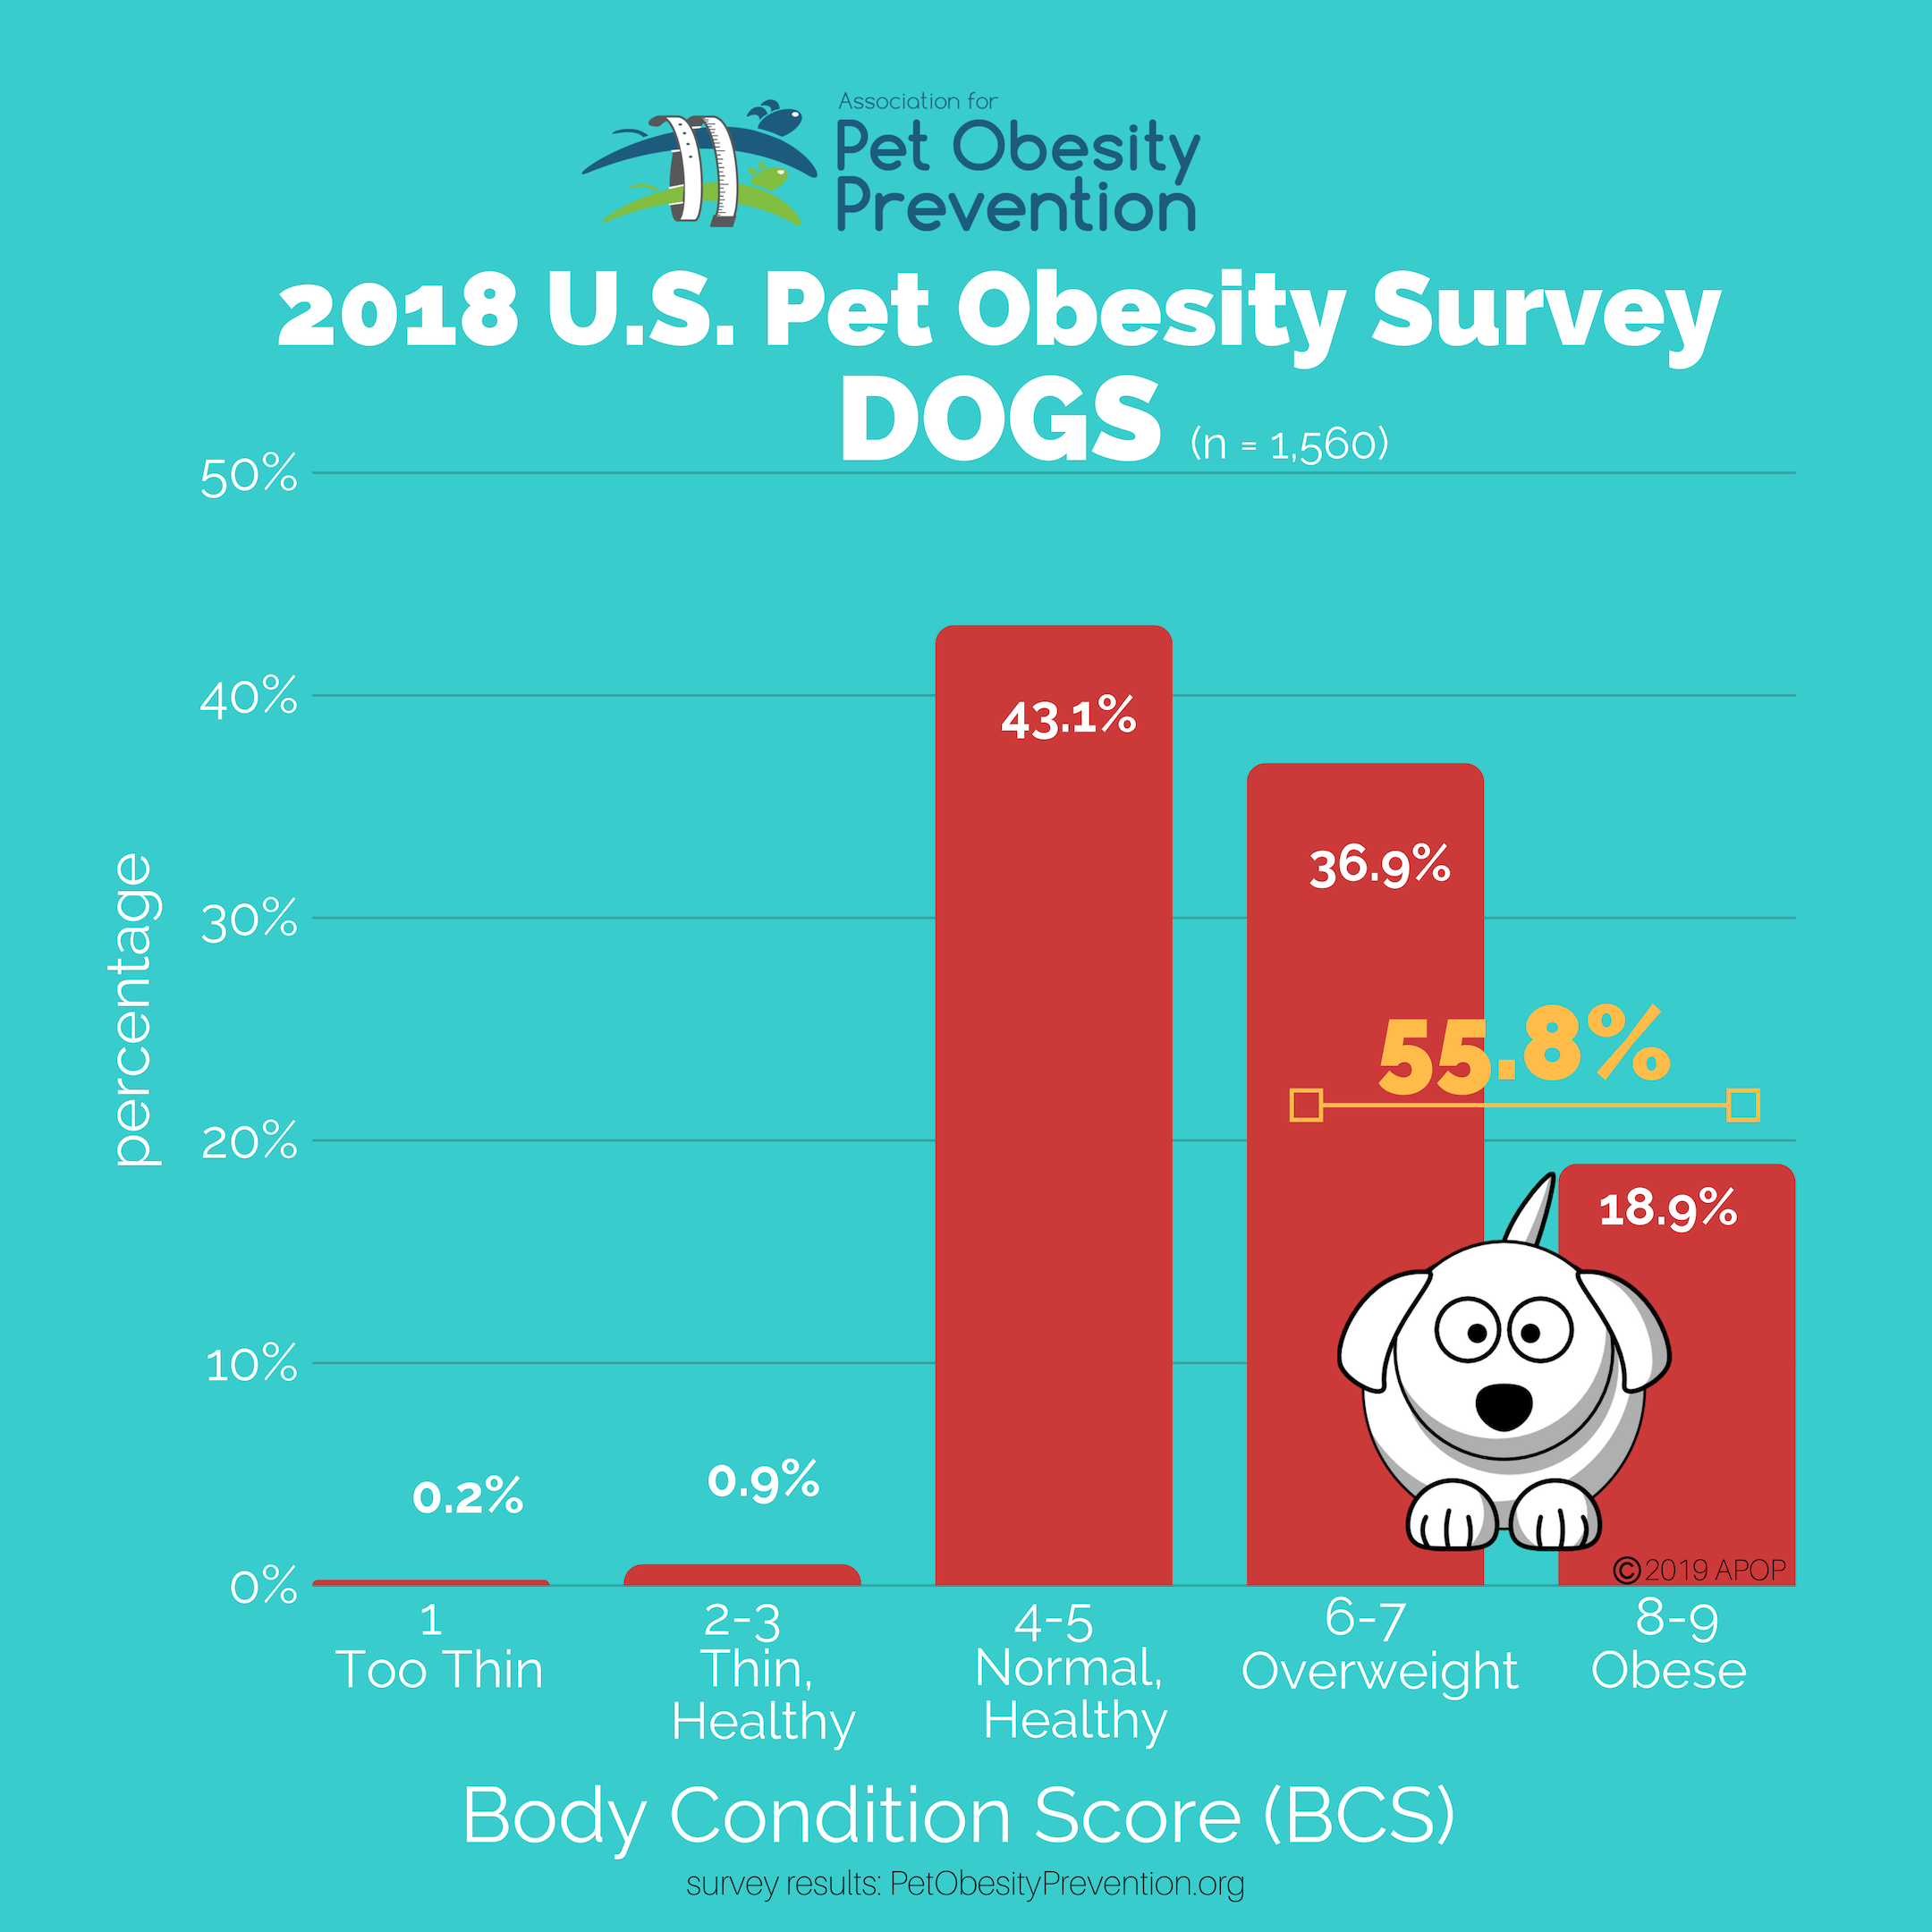 2016 Association For Pet Obesity Prevention